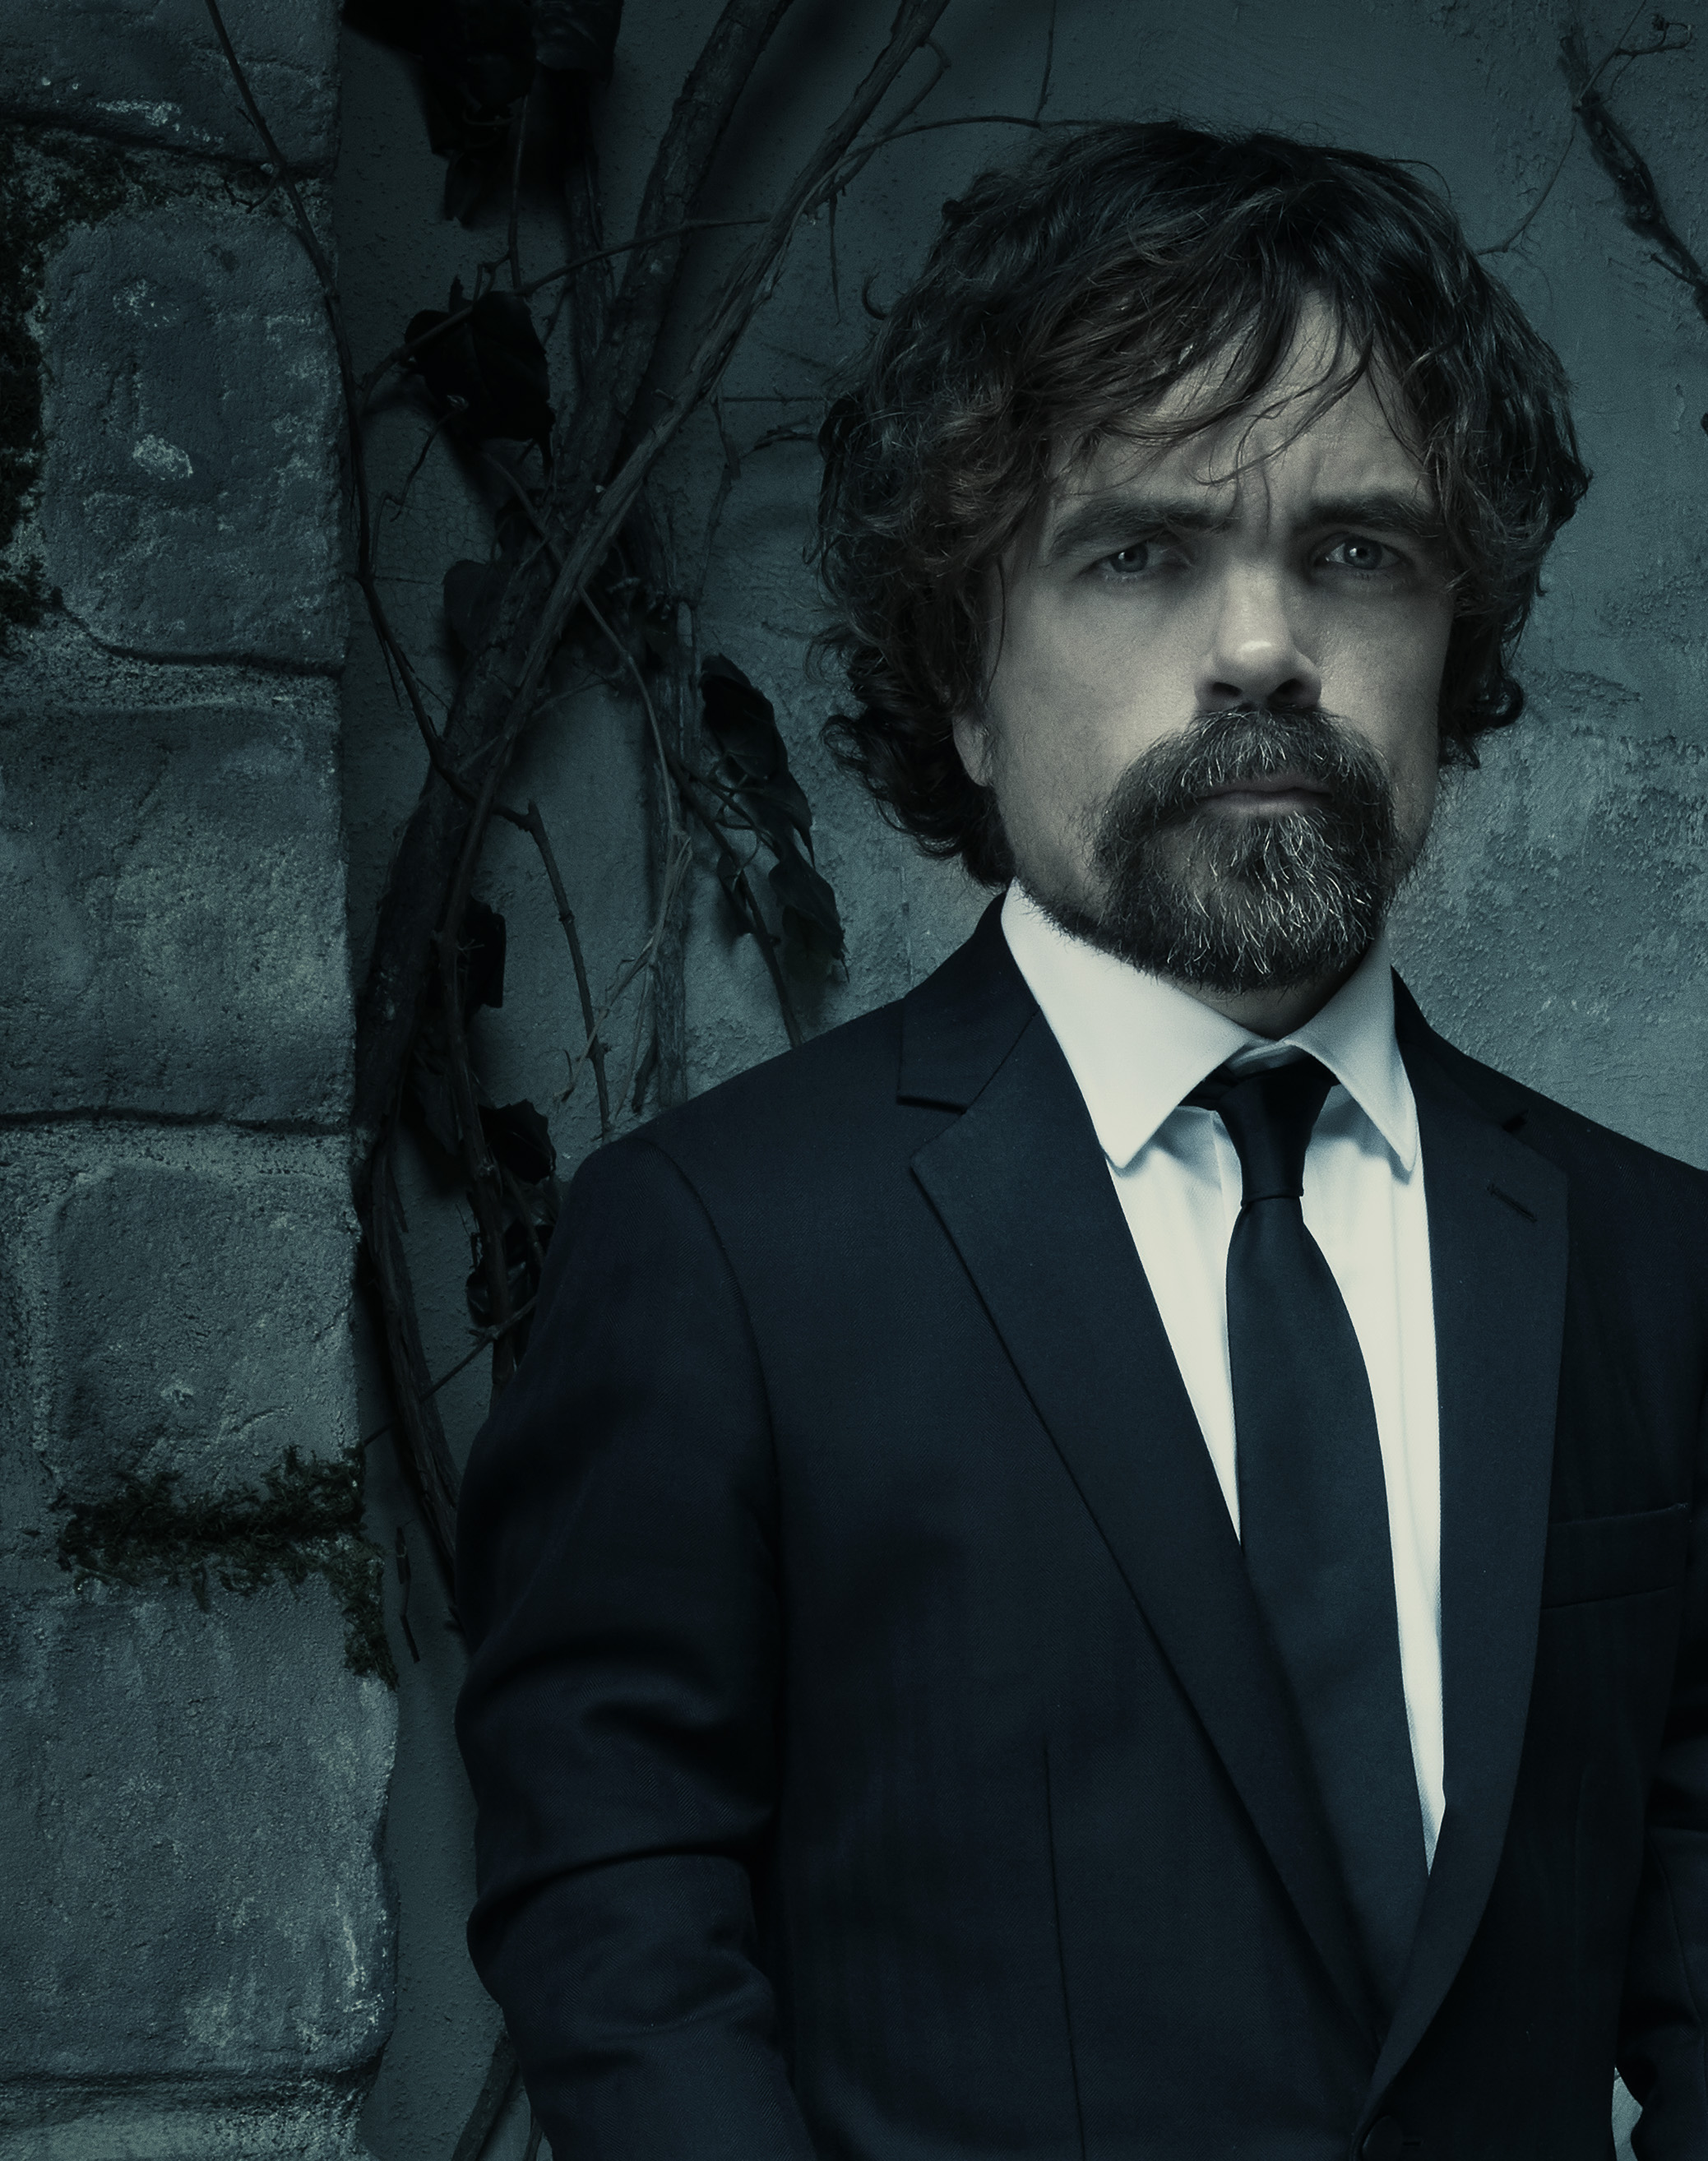 Peter_Dinklage-1697_VFnewcolor